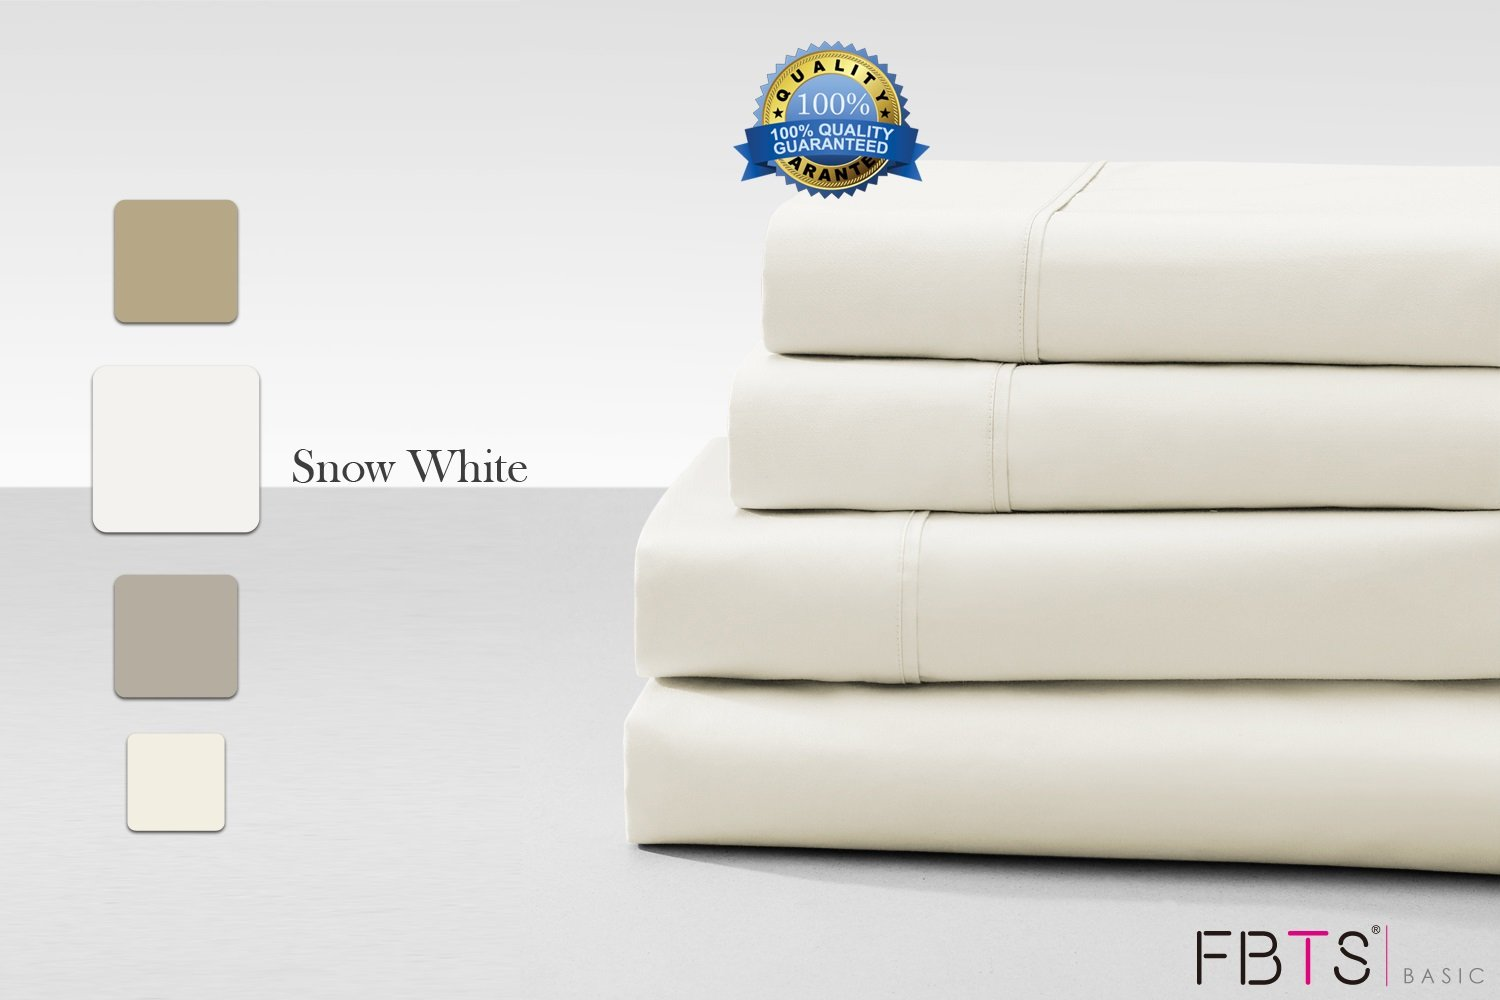 Cotton Rich Sheet Sets (California King, White) 800 Thread Count like Hotel Quality Luxury Bedding Sets with 18'' Deep Pockets 4 Piece Breathable Super Soft Bed Sheets by FBTS Basic